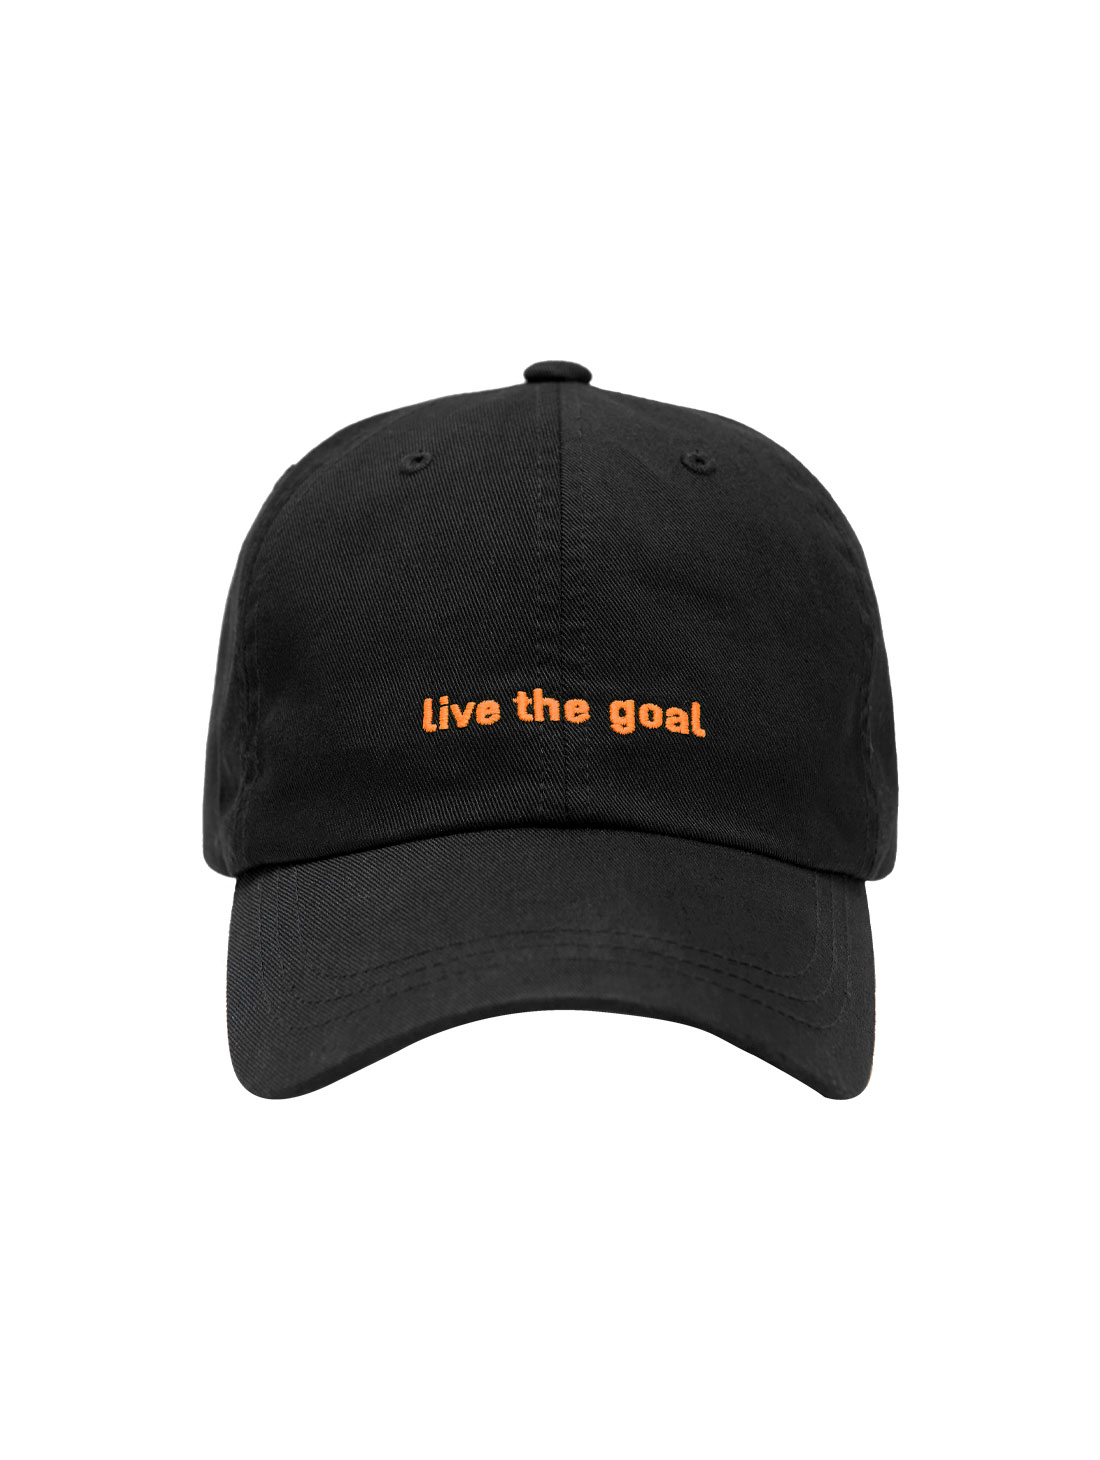 GOALSTUDIO LIVE THE GOAL CAP - ORANGE